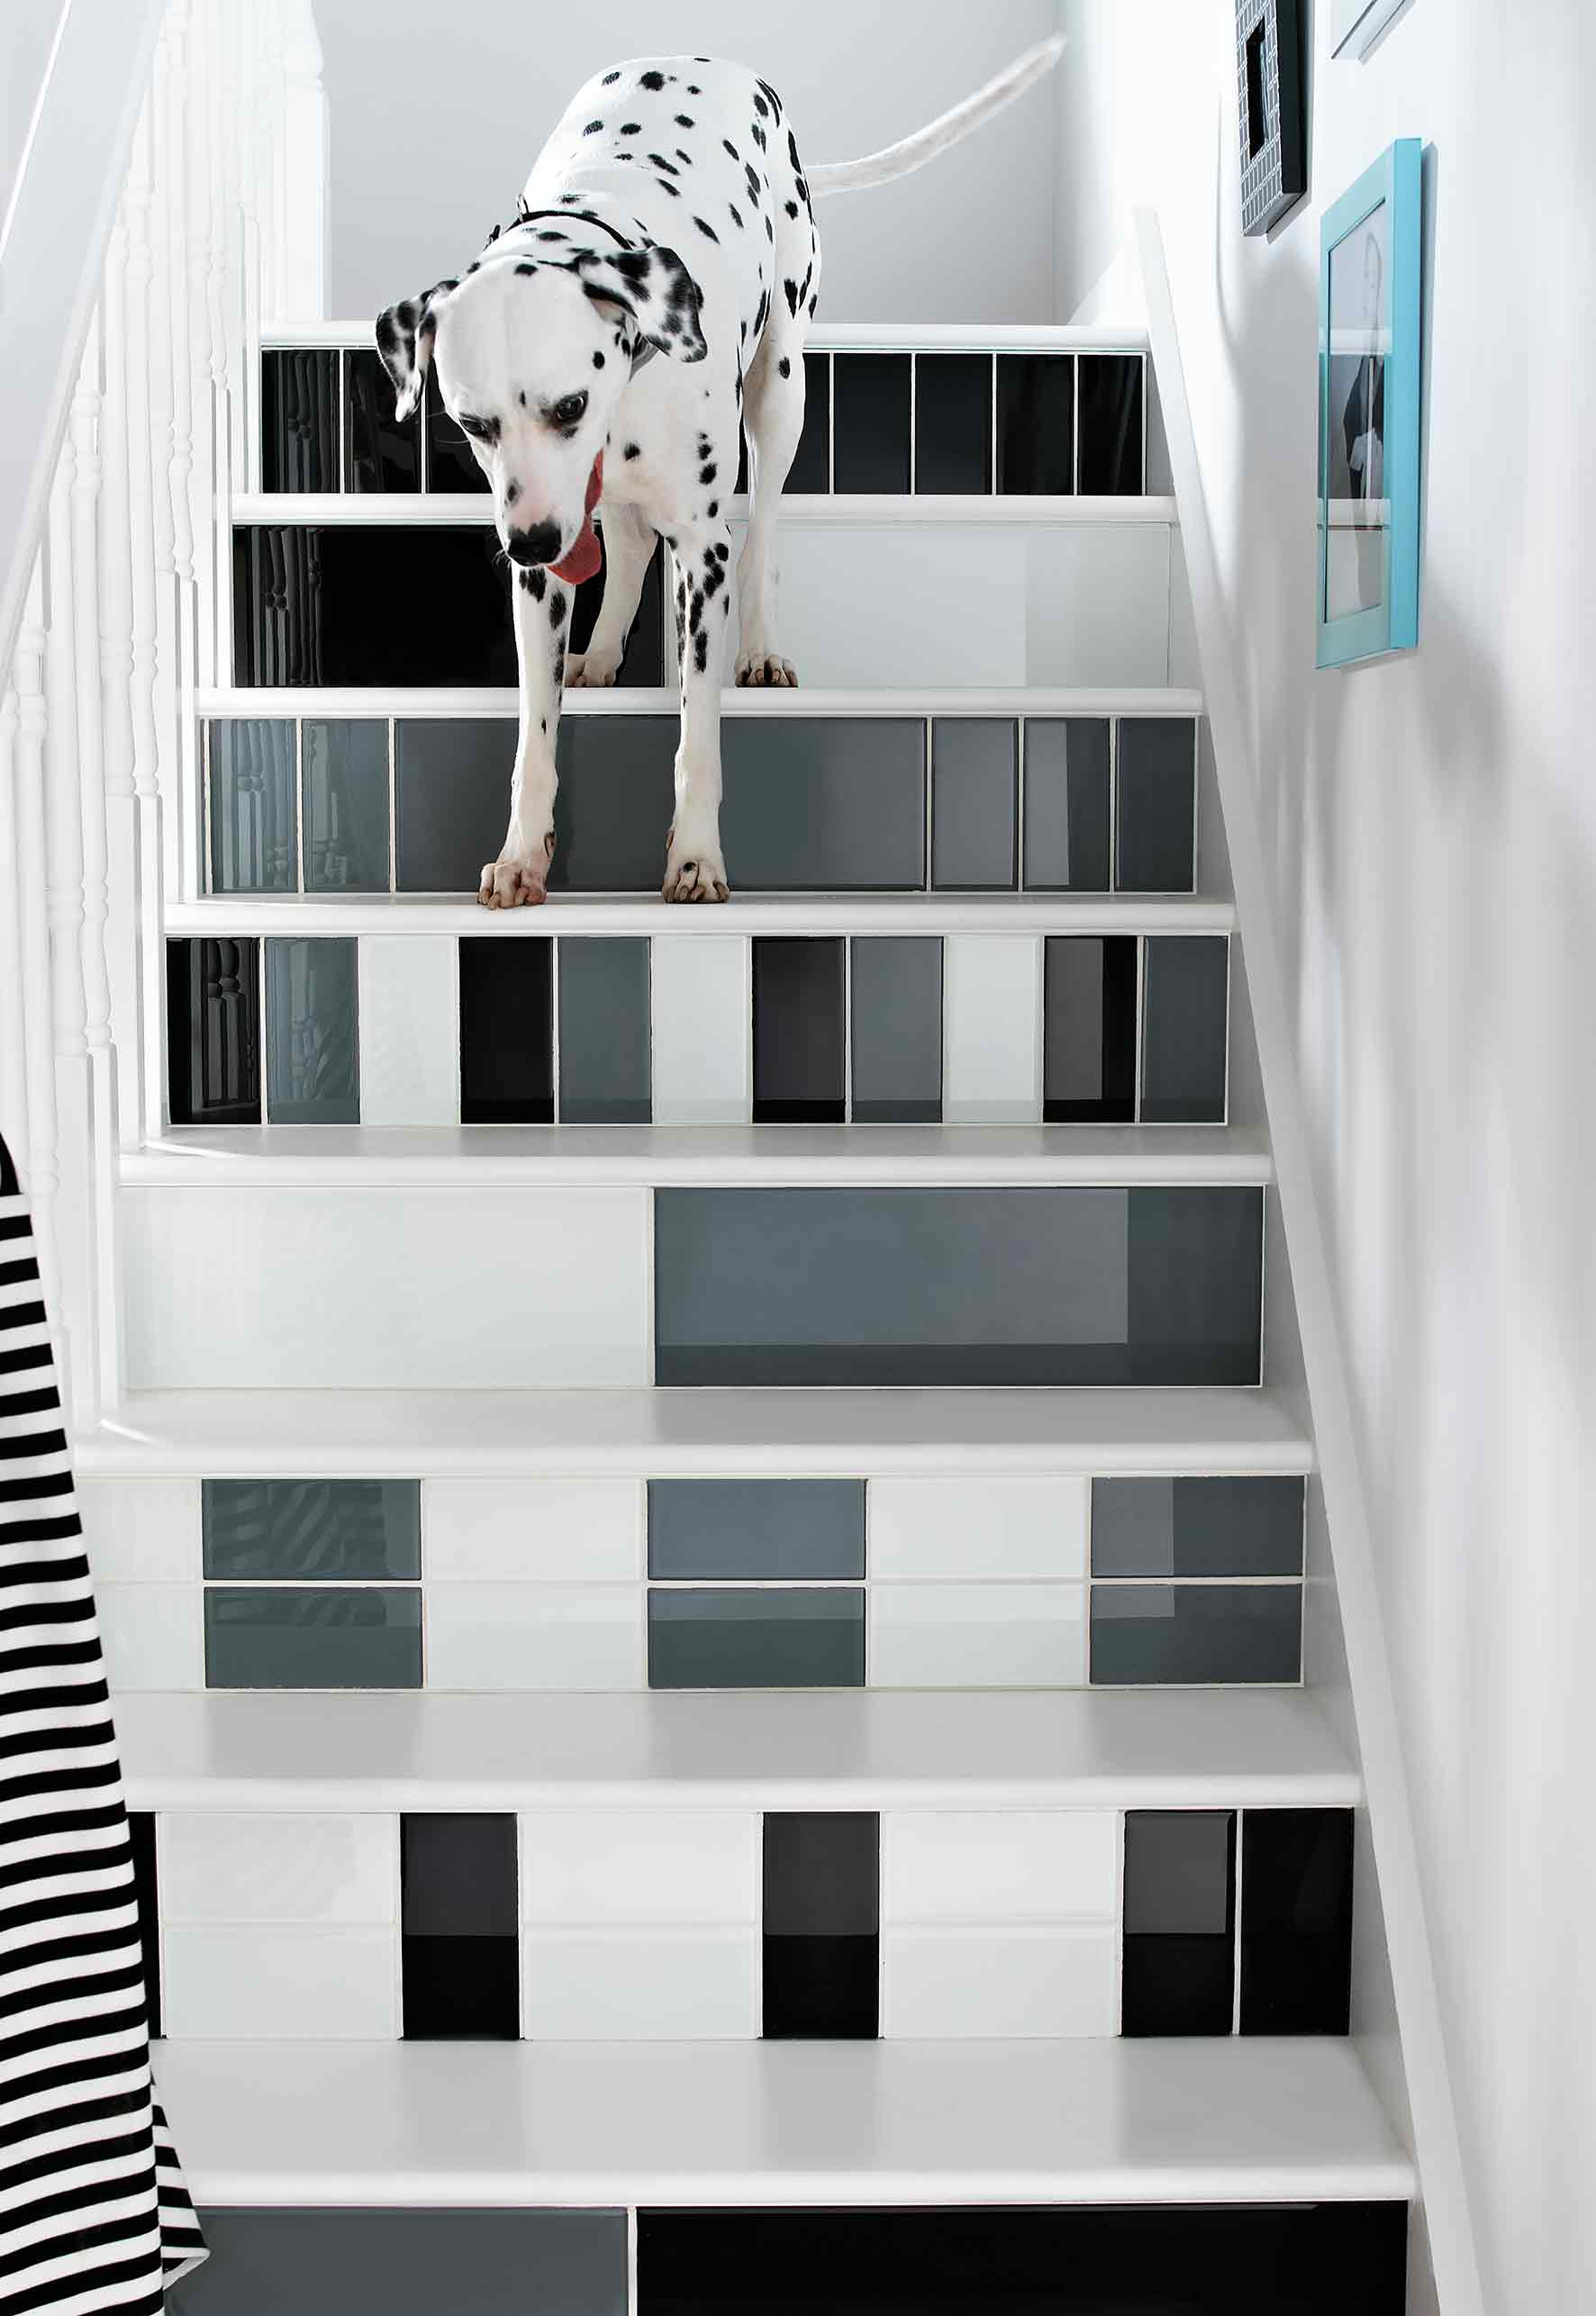 Monochrome tiled Staircase with dalmation Dog